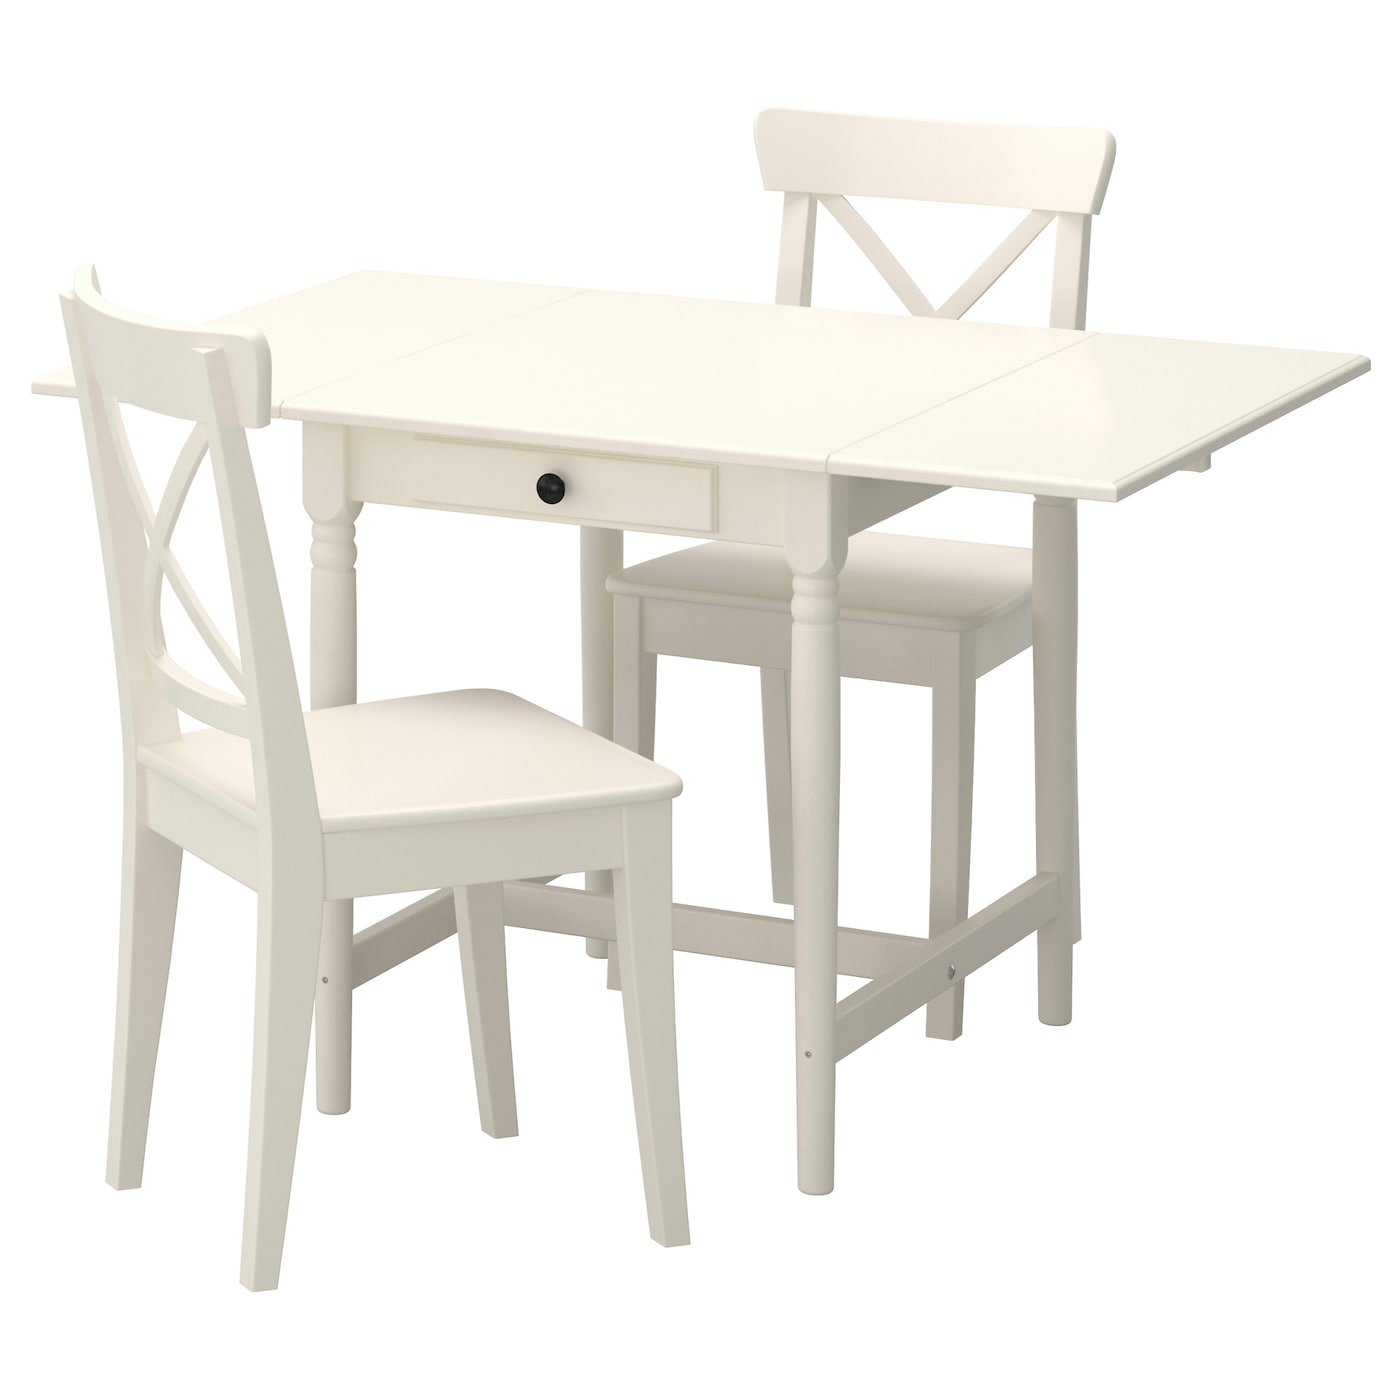 IKEA INGATORP INGOLF Table And 2 Chairs The Clear Lacquered Surface Is Easy To